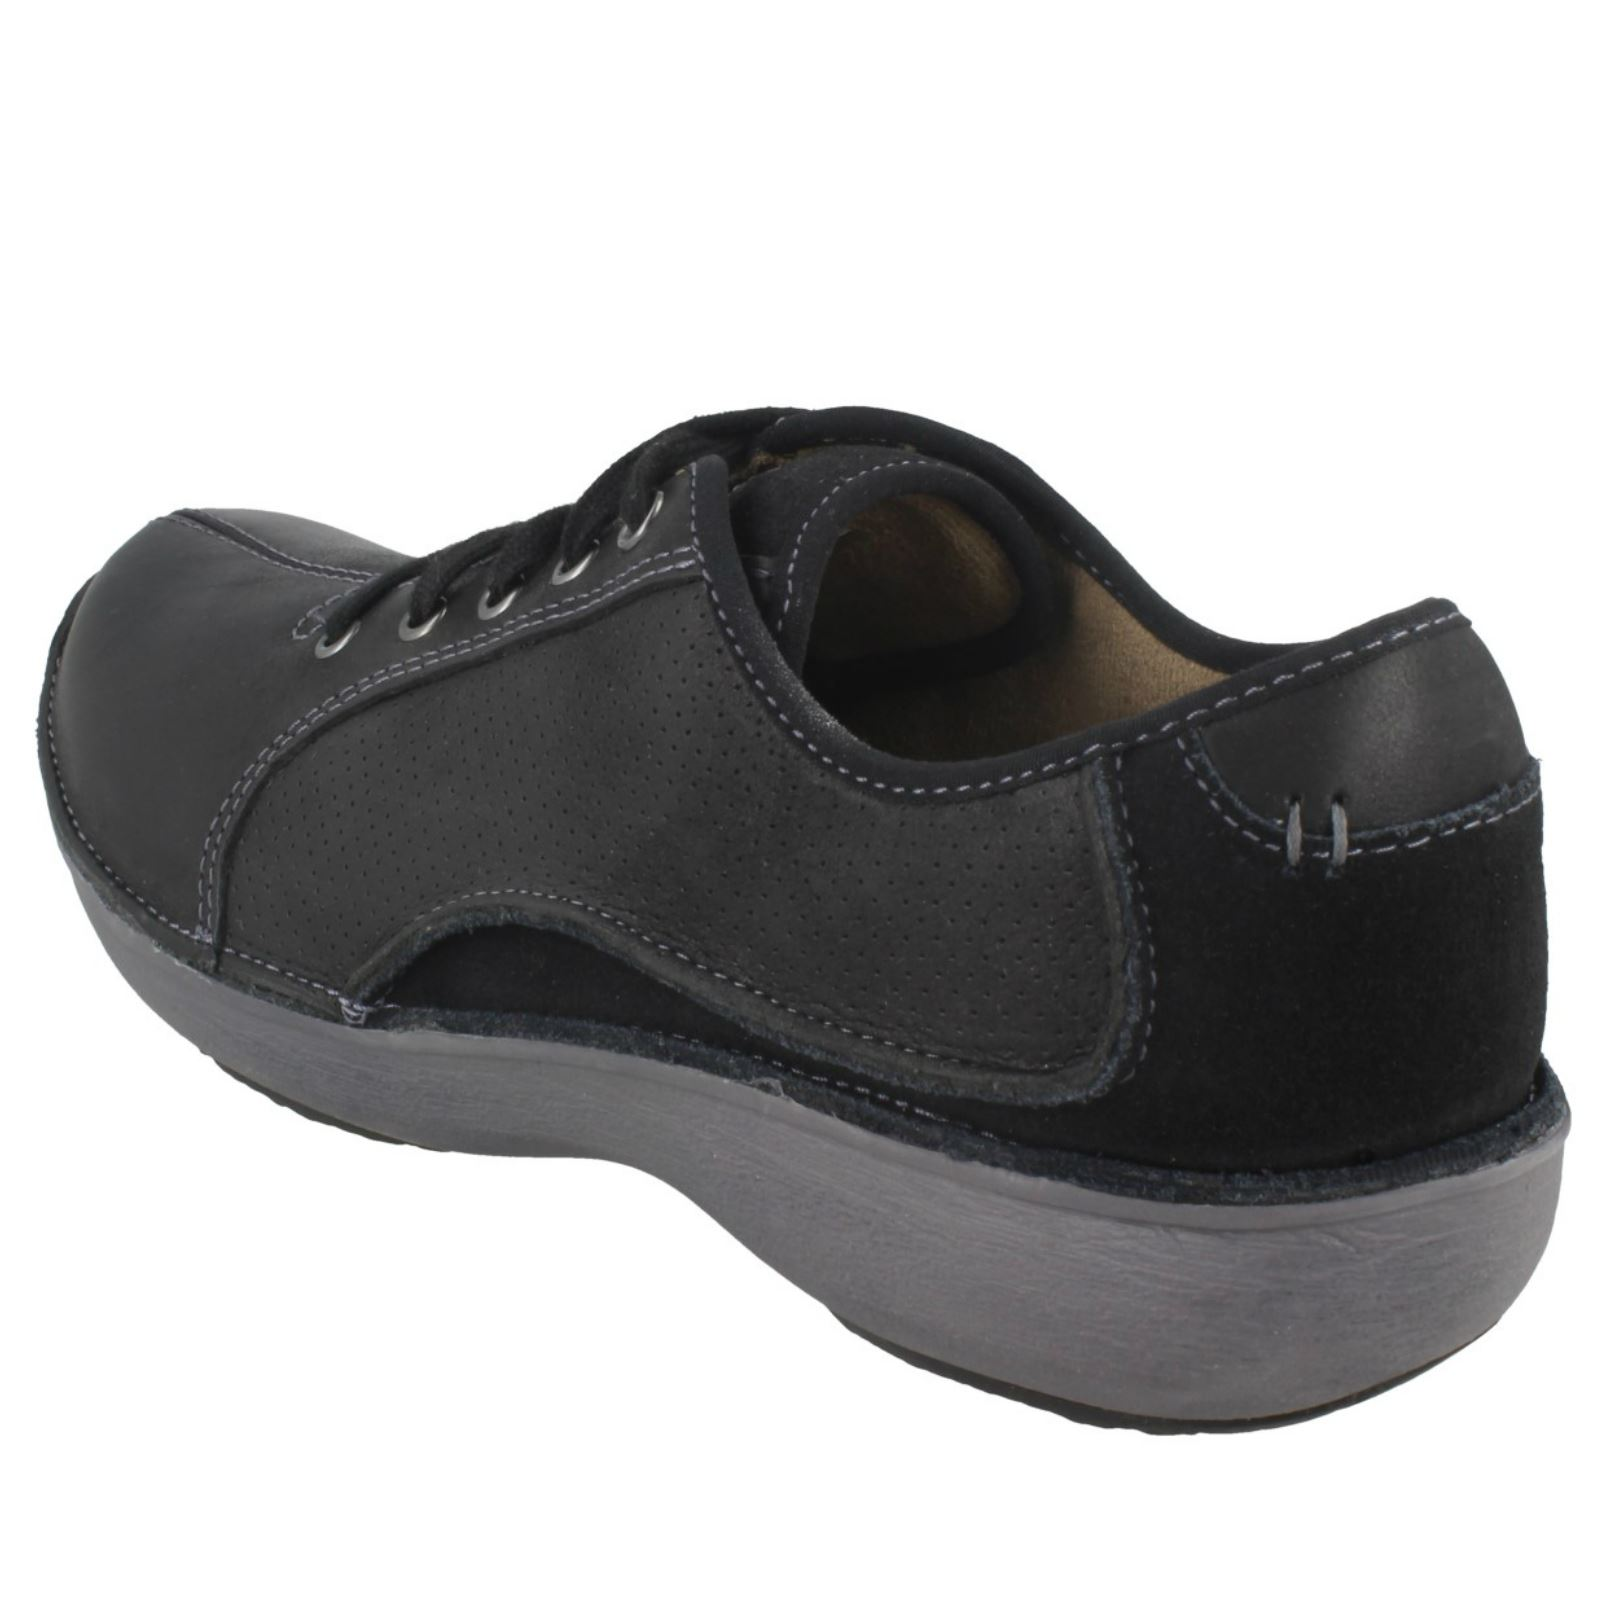 Ladies Casual Toe Clarks Black Leather Wave Lace Rounded Up Shoes Drift qSrqHwn